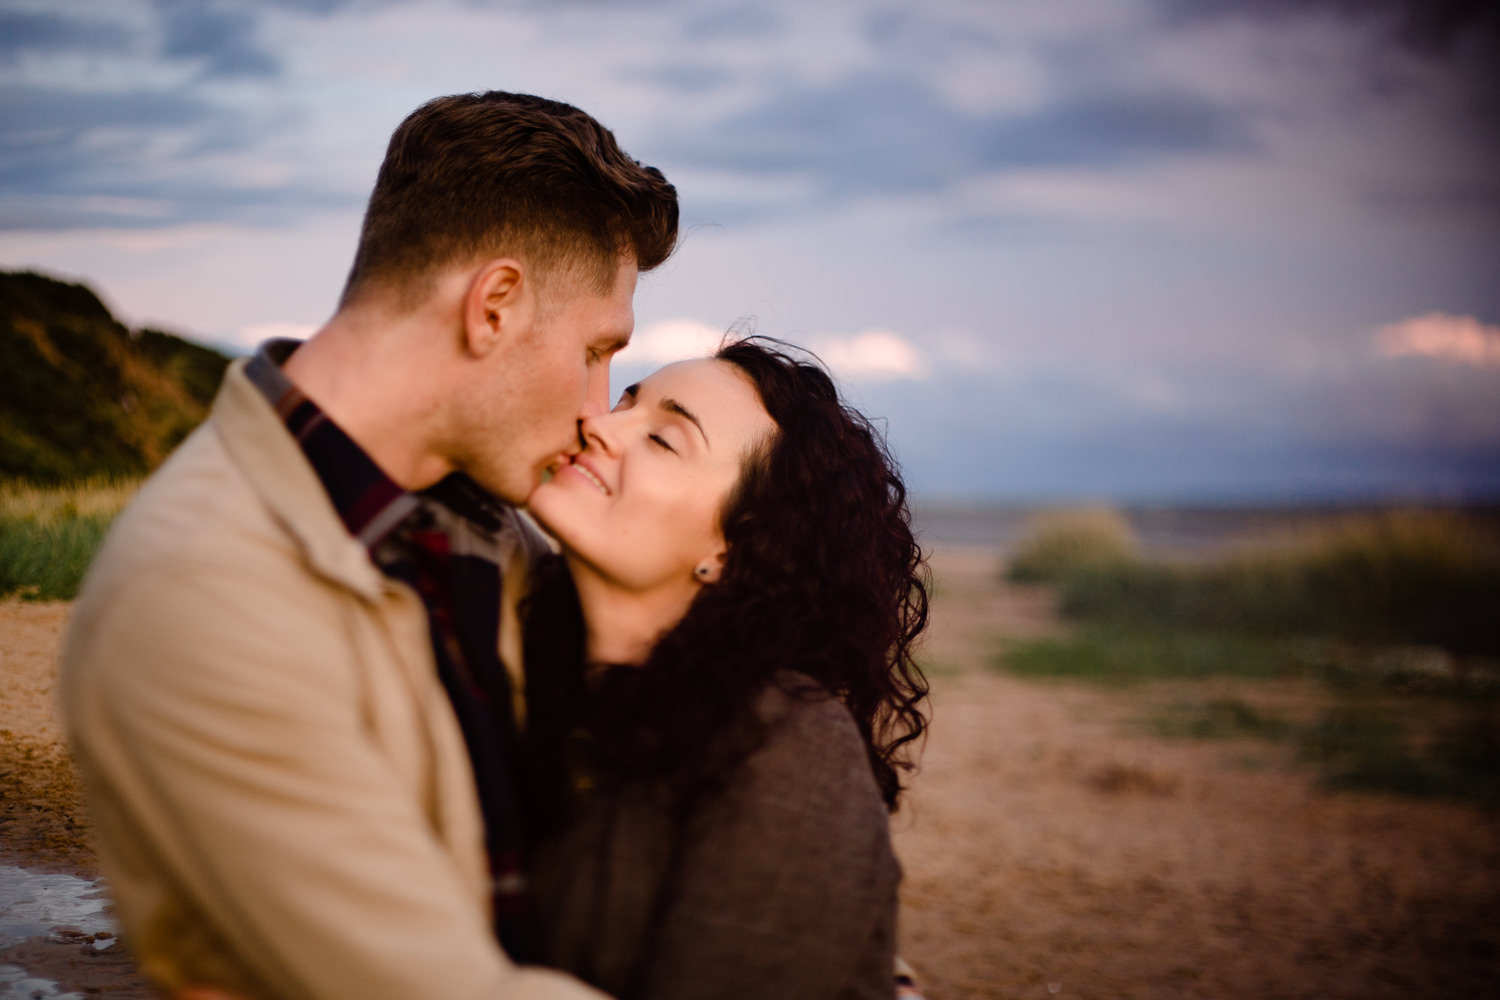 A couple kiss at sunset on a beach - Freelensing shot